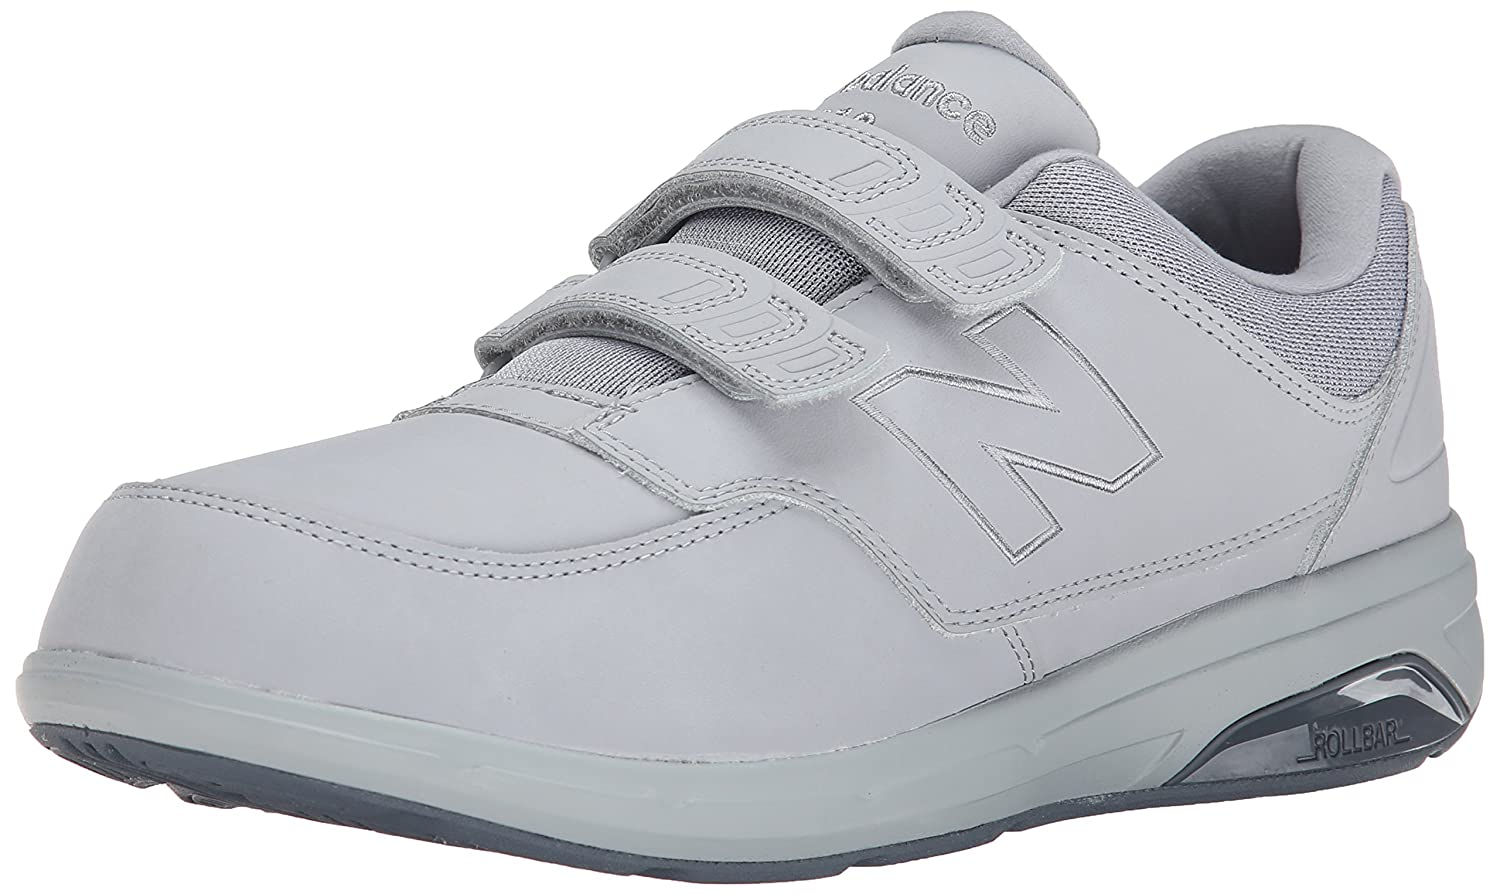 Nuovo Velcro Equilibrio Mens Shoes 12IqQ2EfWK